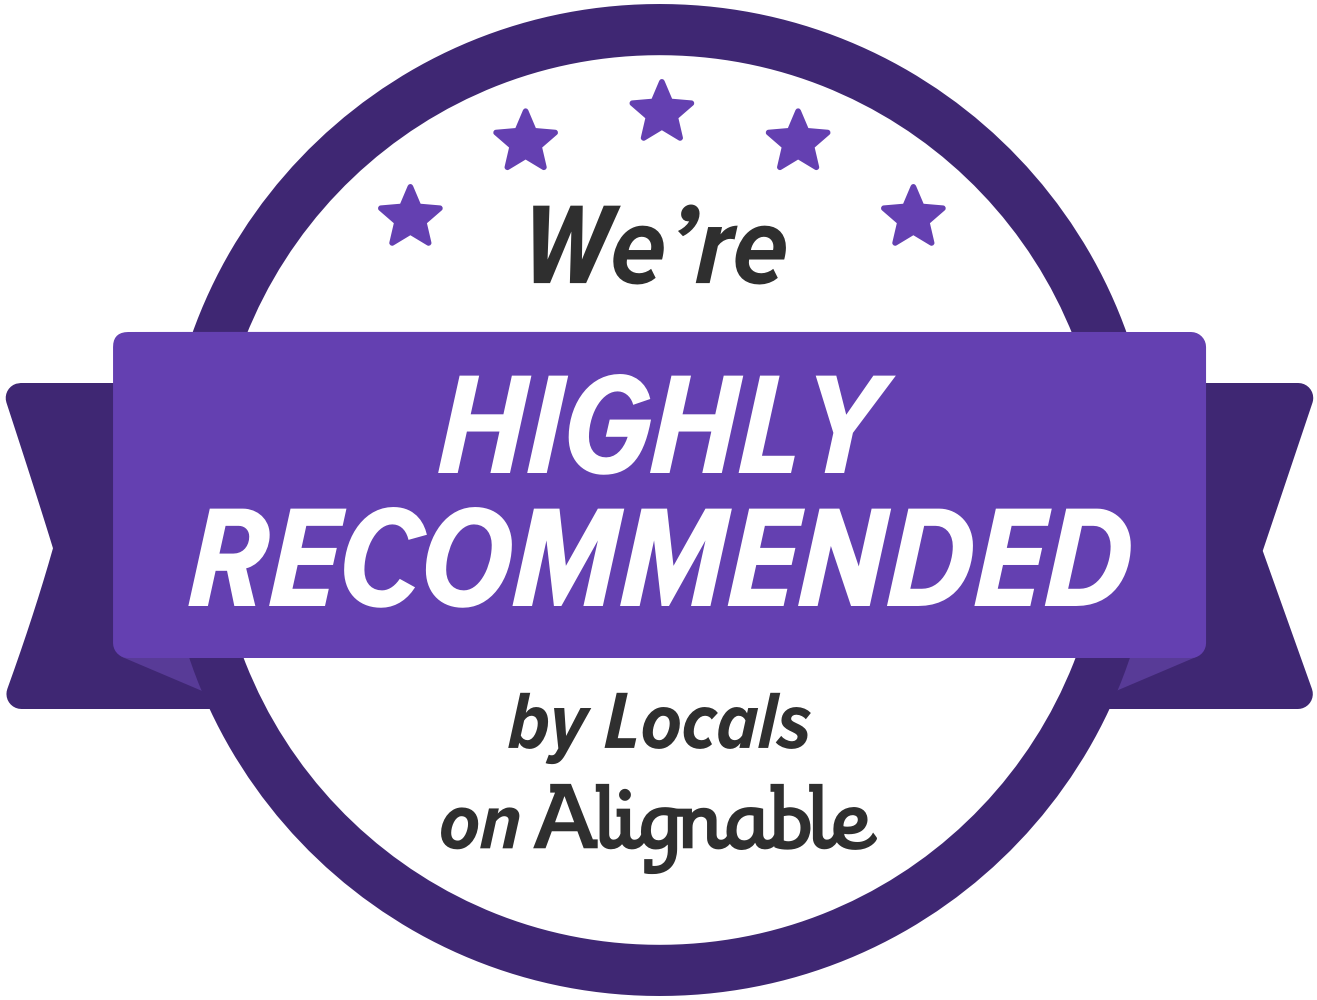 Alignable Stoneman Highly Recommended Badge